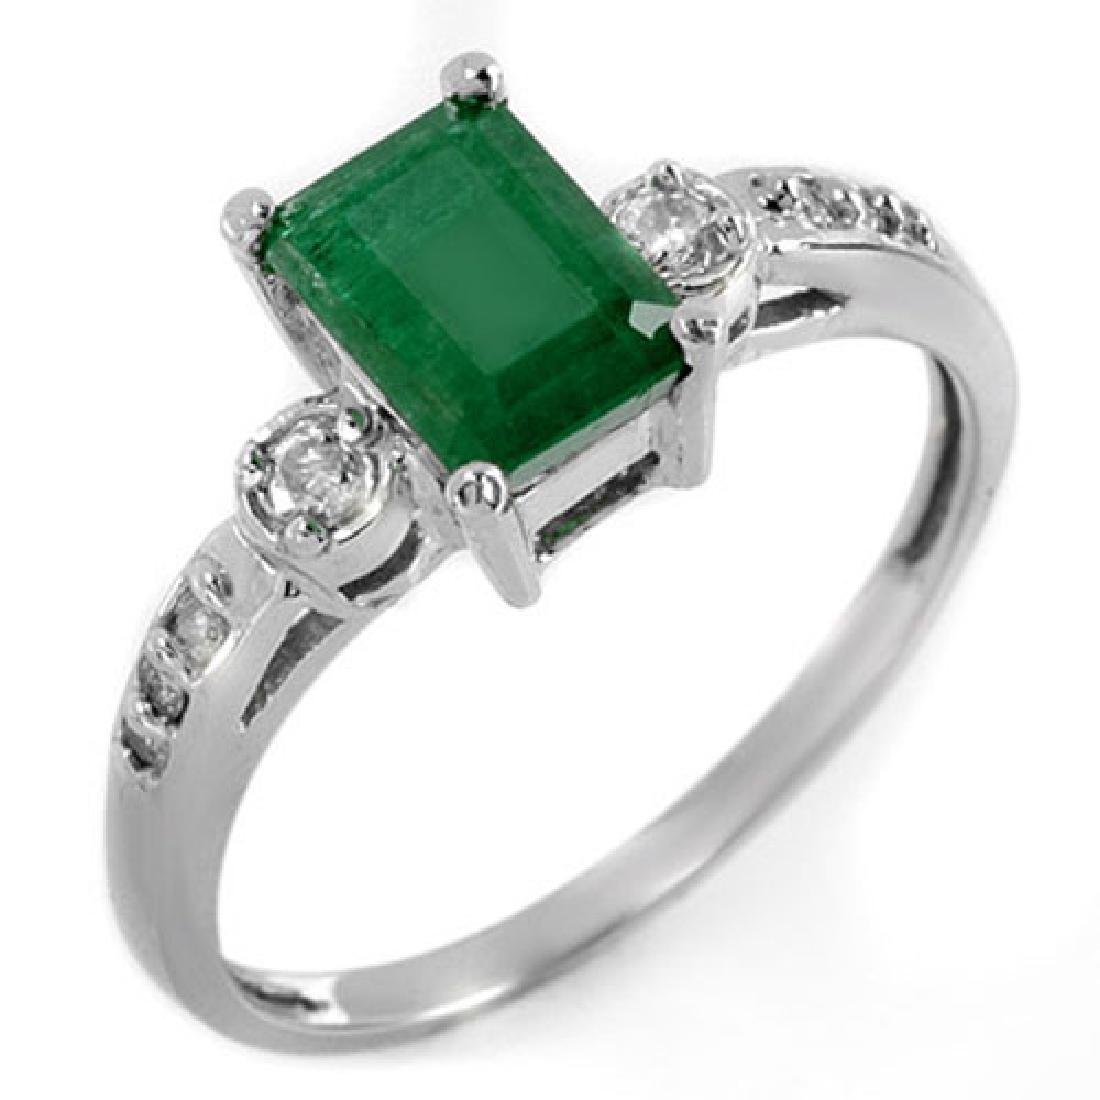 1.45 CTW Emerald & Diamond Ring 18K White Gold